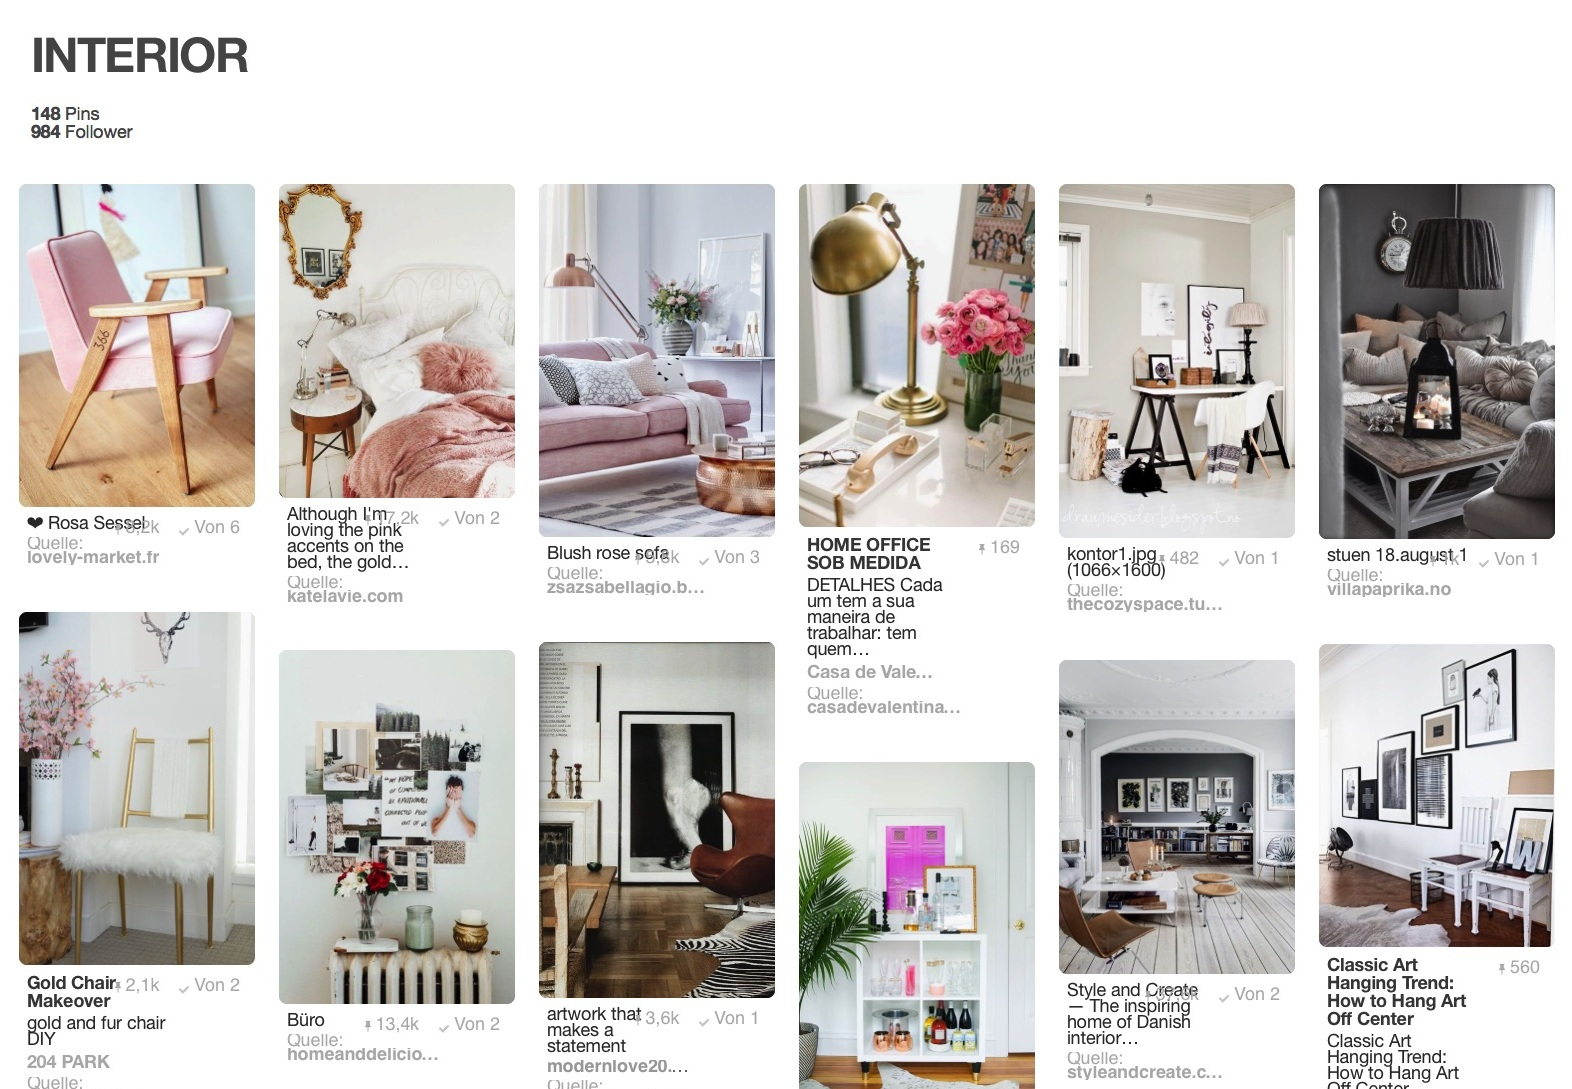 blogger-interior-tipps-pastel-colors-pinterest-mood-board-fashiioncarpet